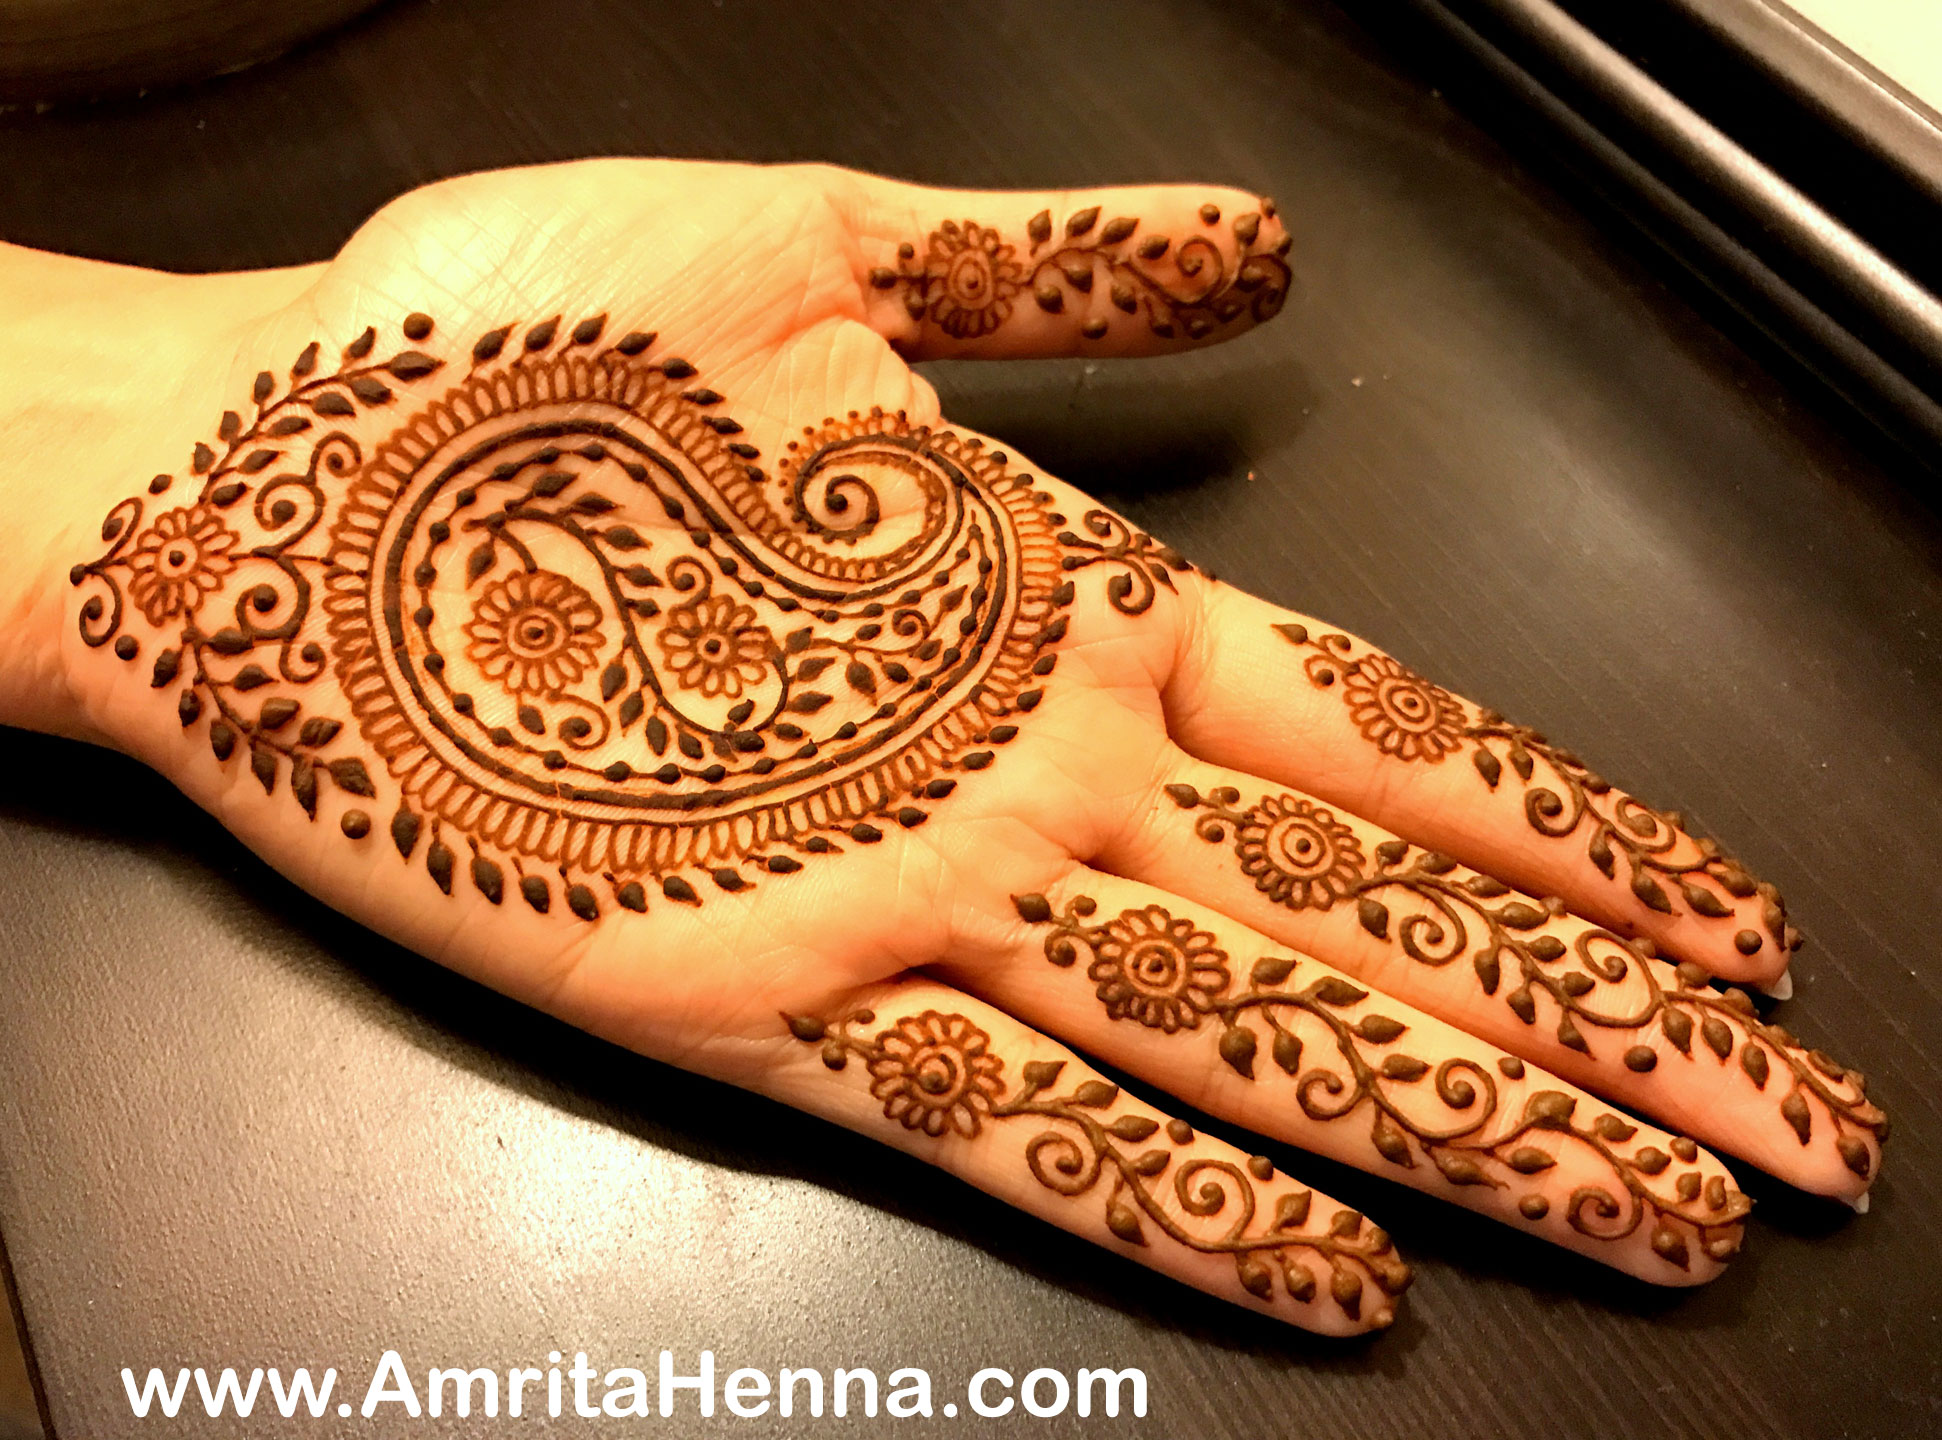 a380cd7af 5 TRADITIONAL PAISLEY HENNA MEHNDI DESIGNS YOU CANT MISS - HENNA ...